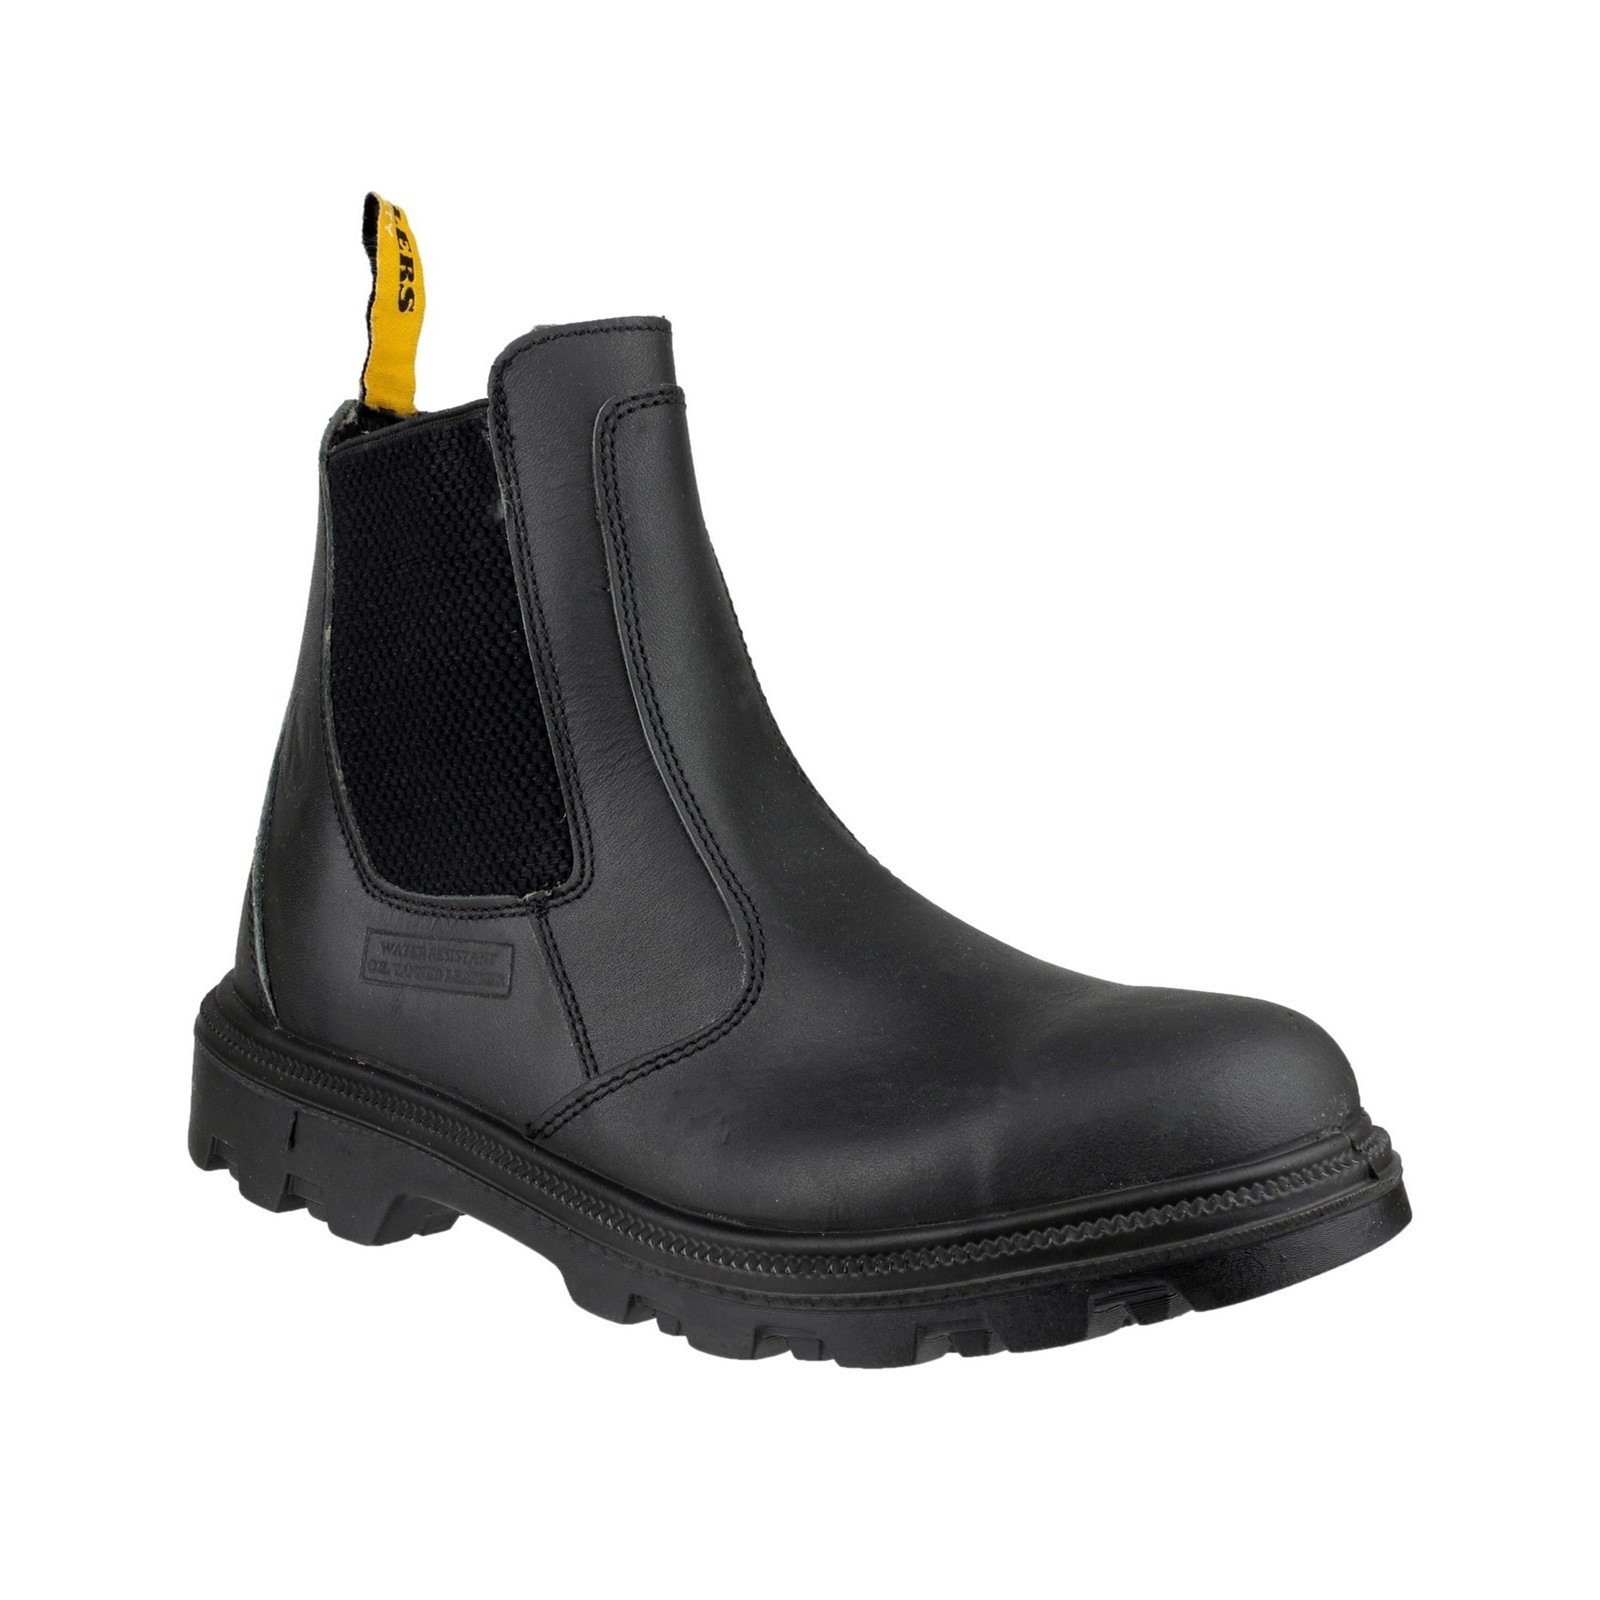 1b699a83266 Details about Amblers Safety Mens FS129 Water Resistant Pull on safety  Dealer Boot